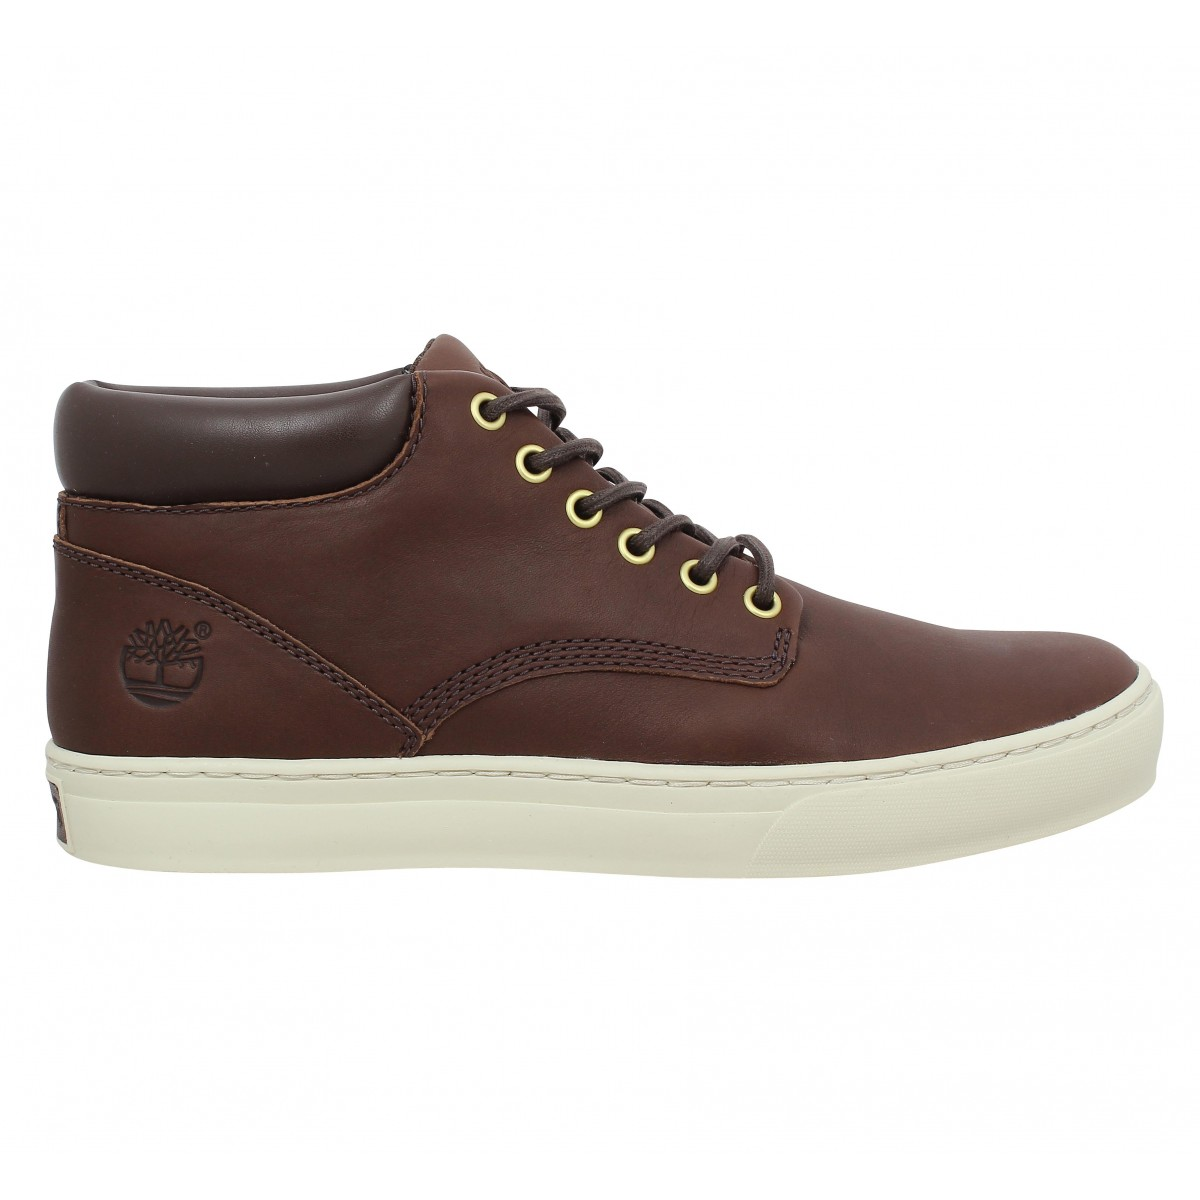 Chaussures Timberland Adventure marron homme it3NhUj